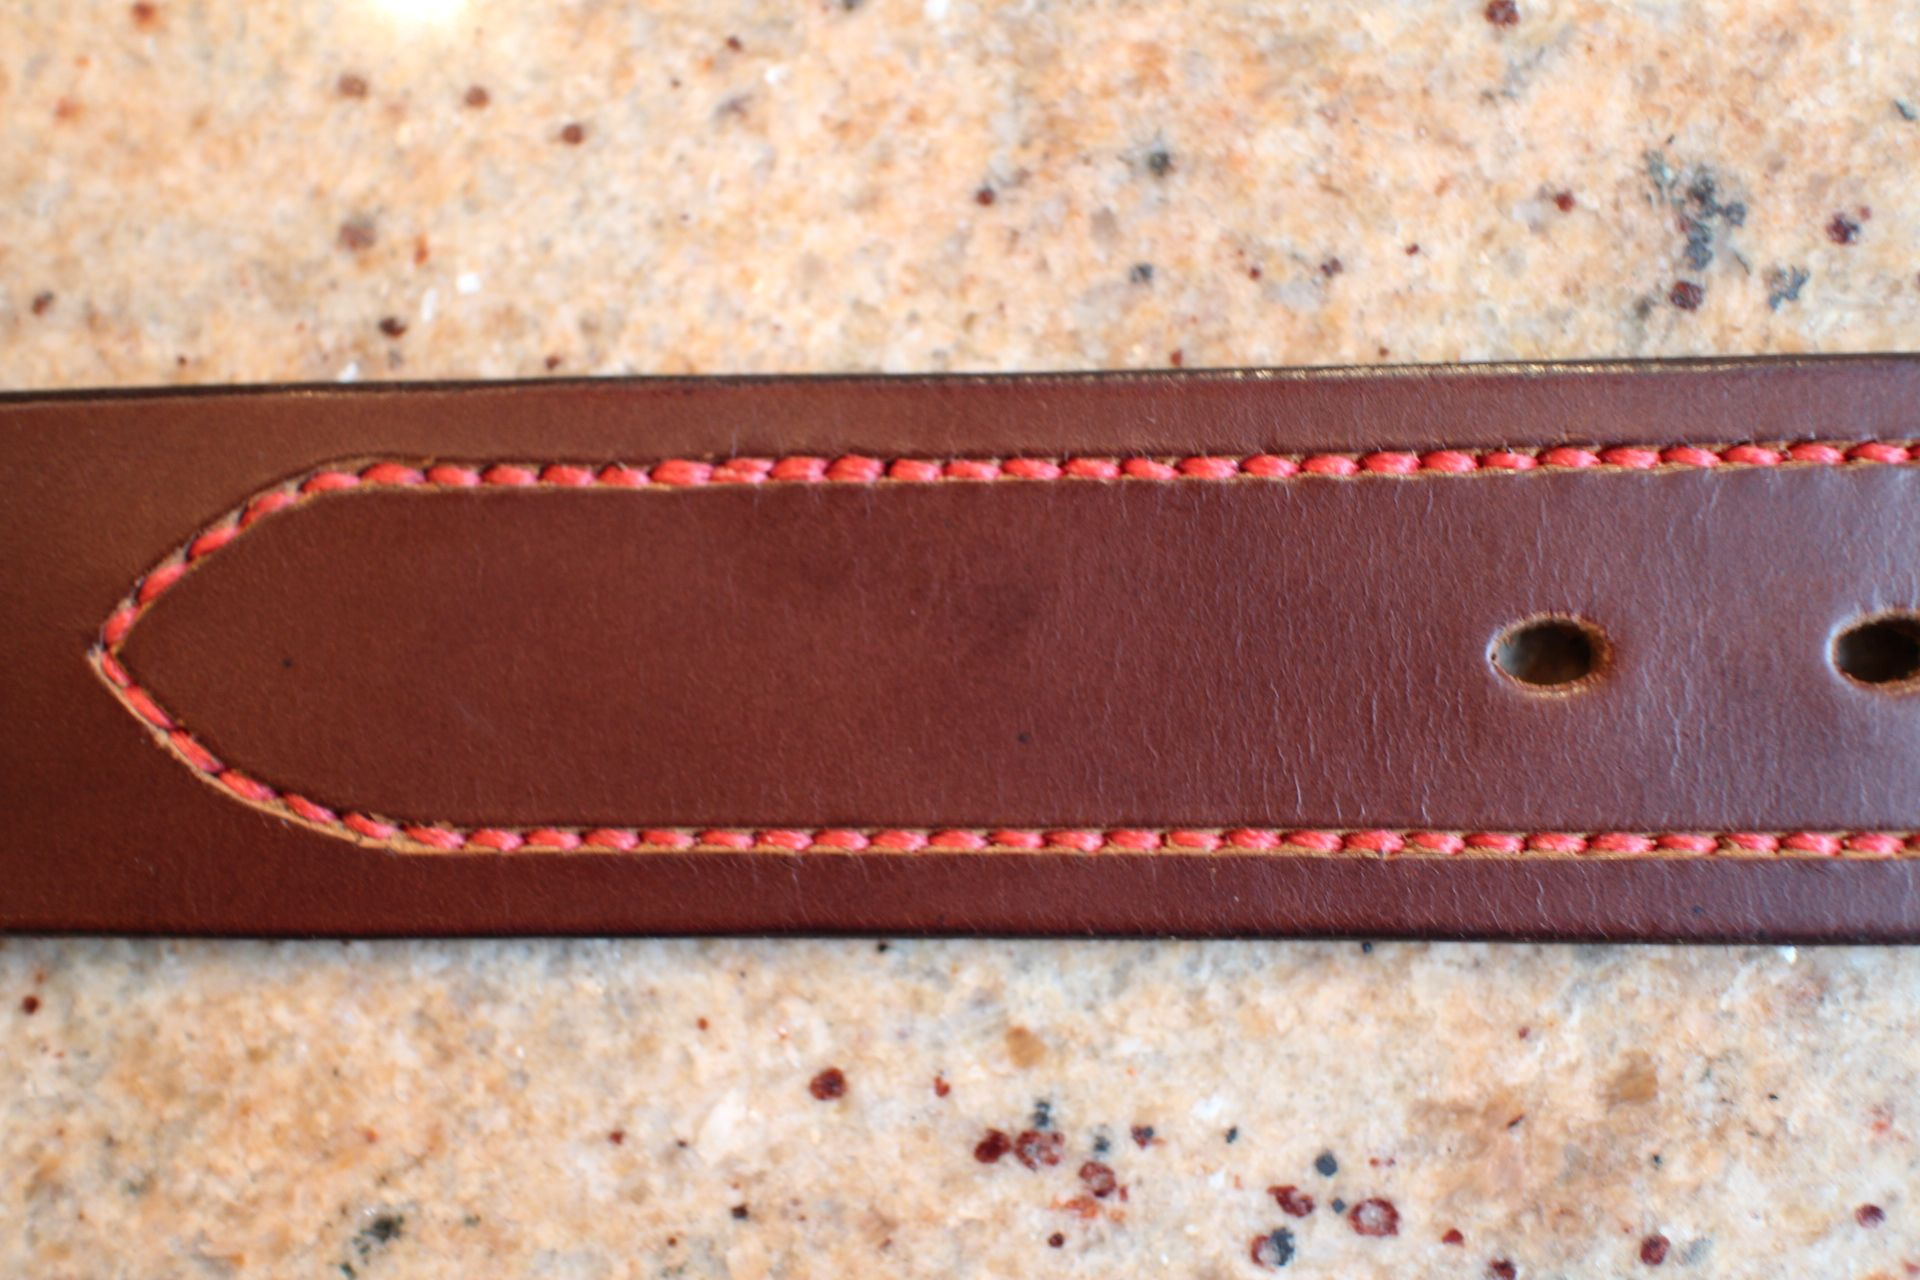 Close up of hand saddle stitching.sunk below the surface